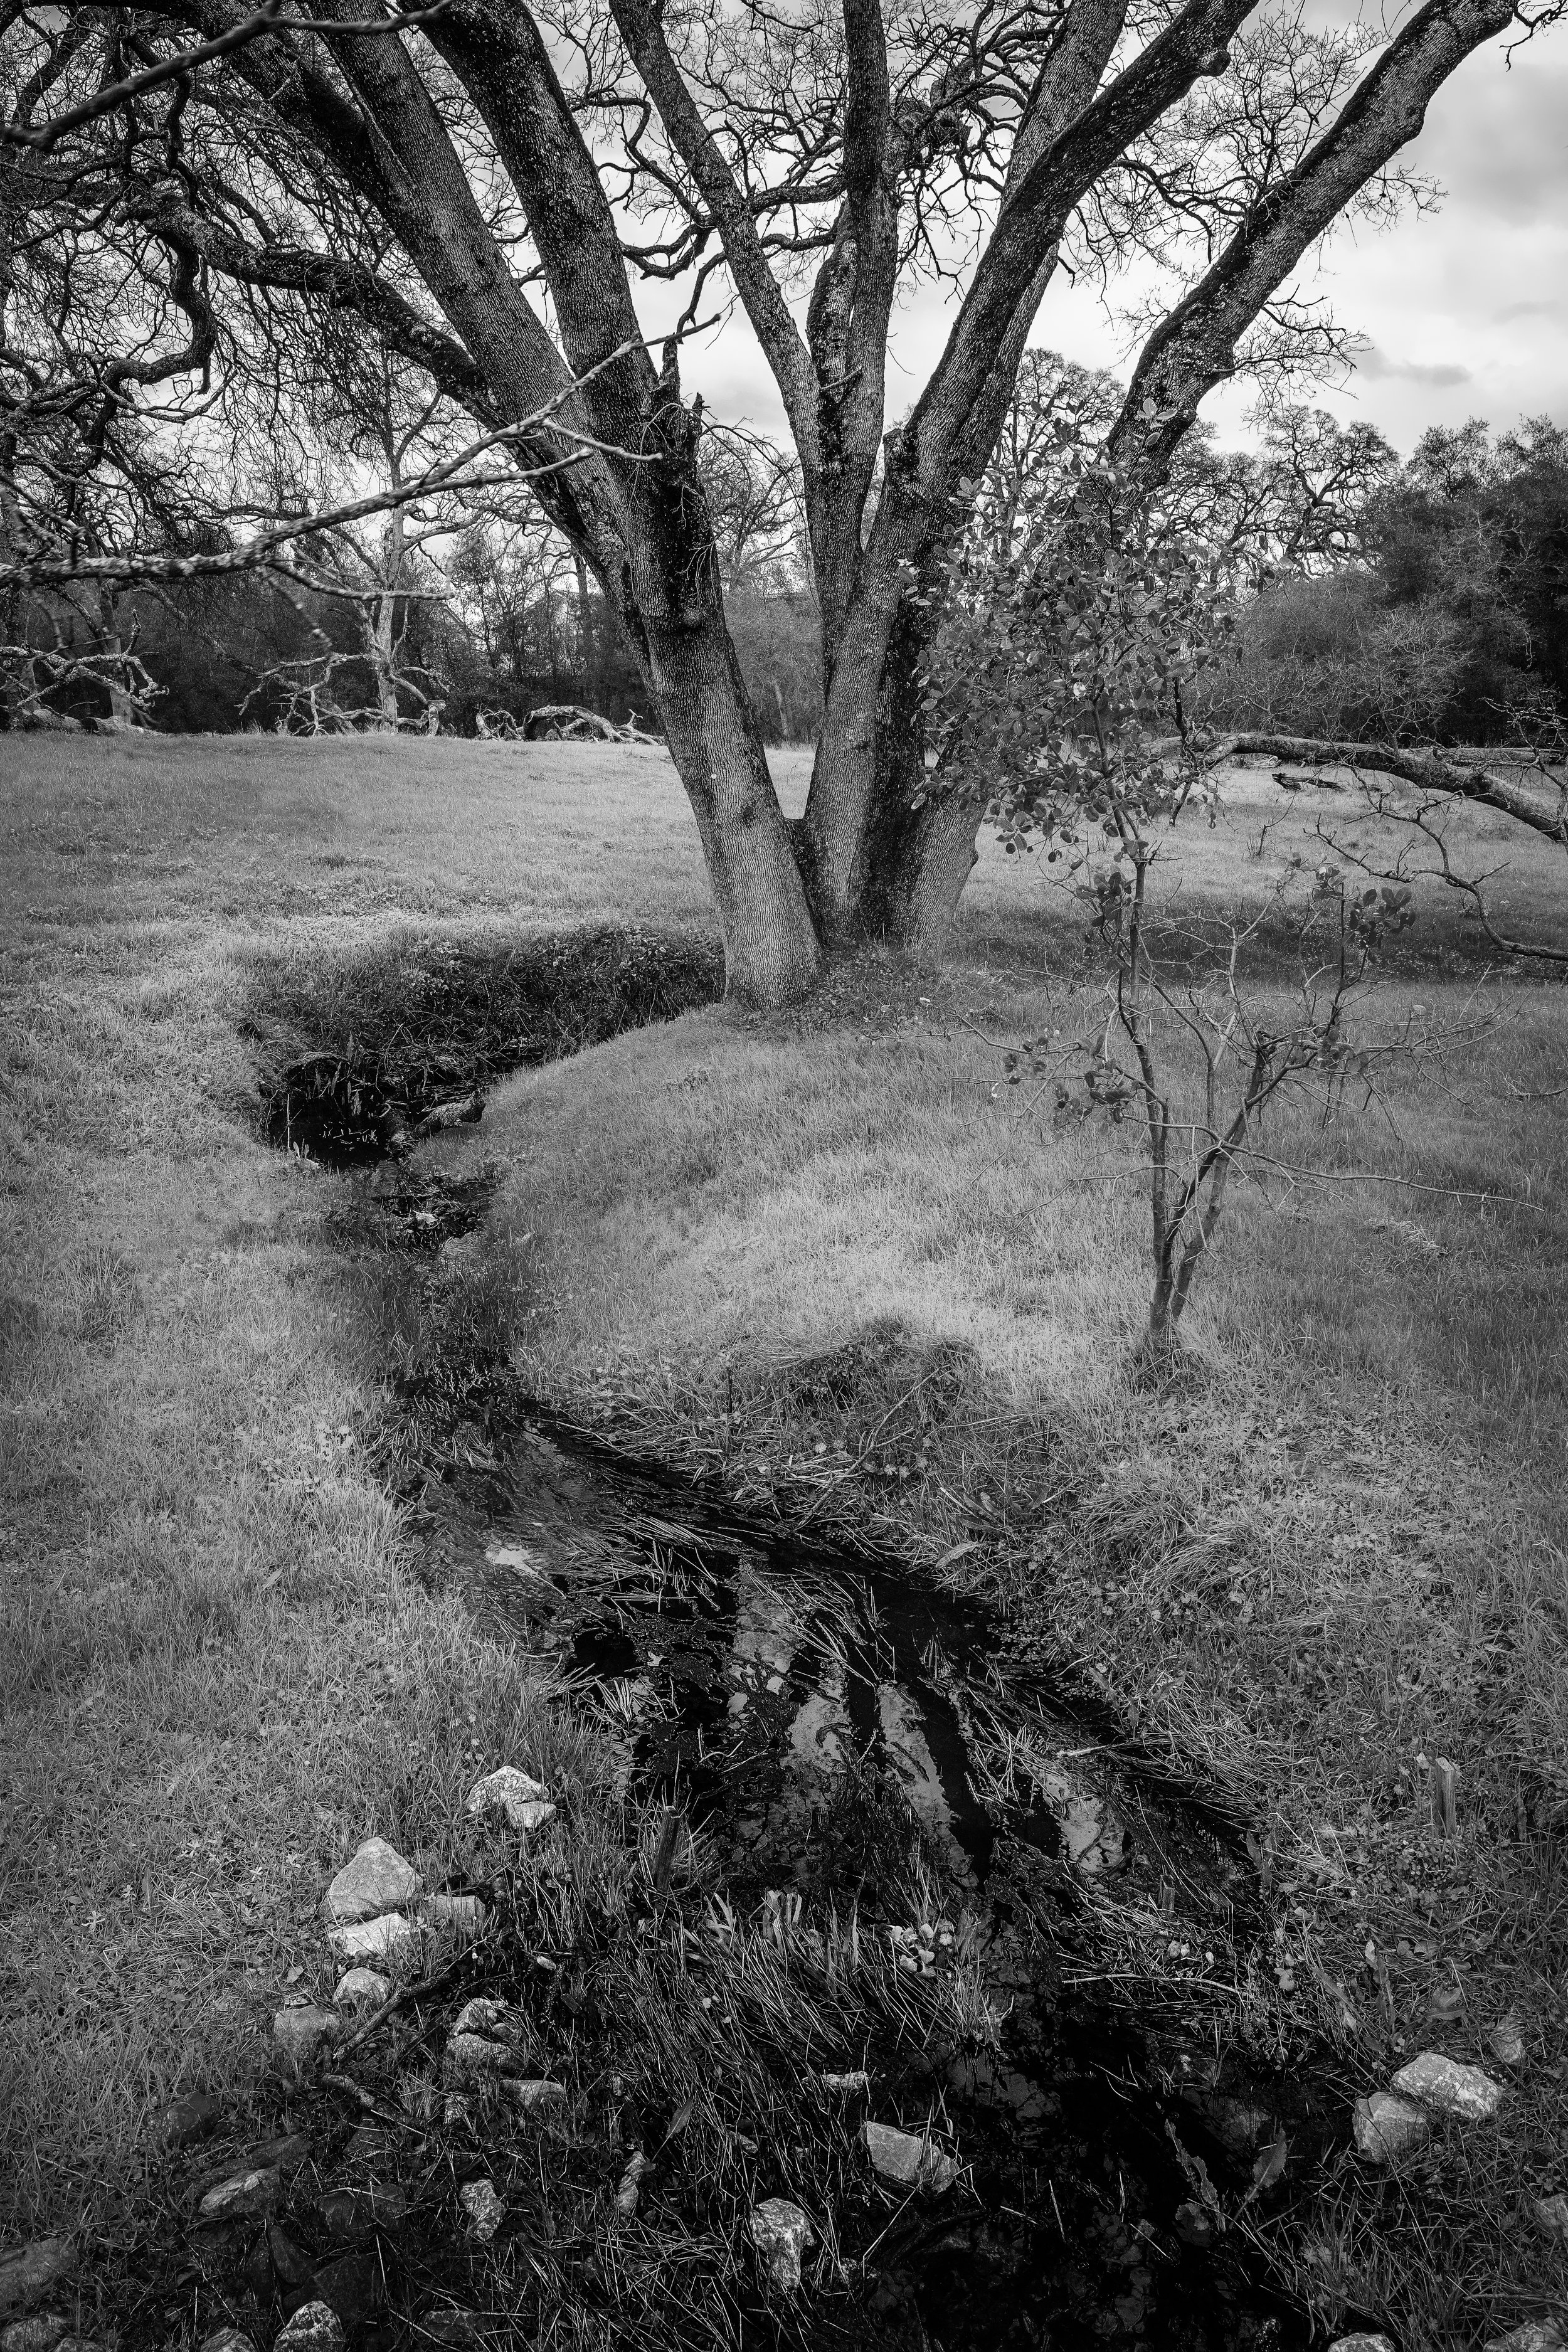 Tributary to Branch Creek